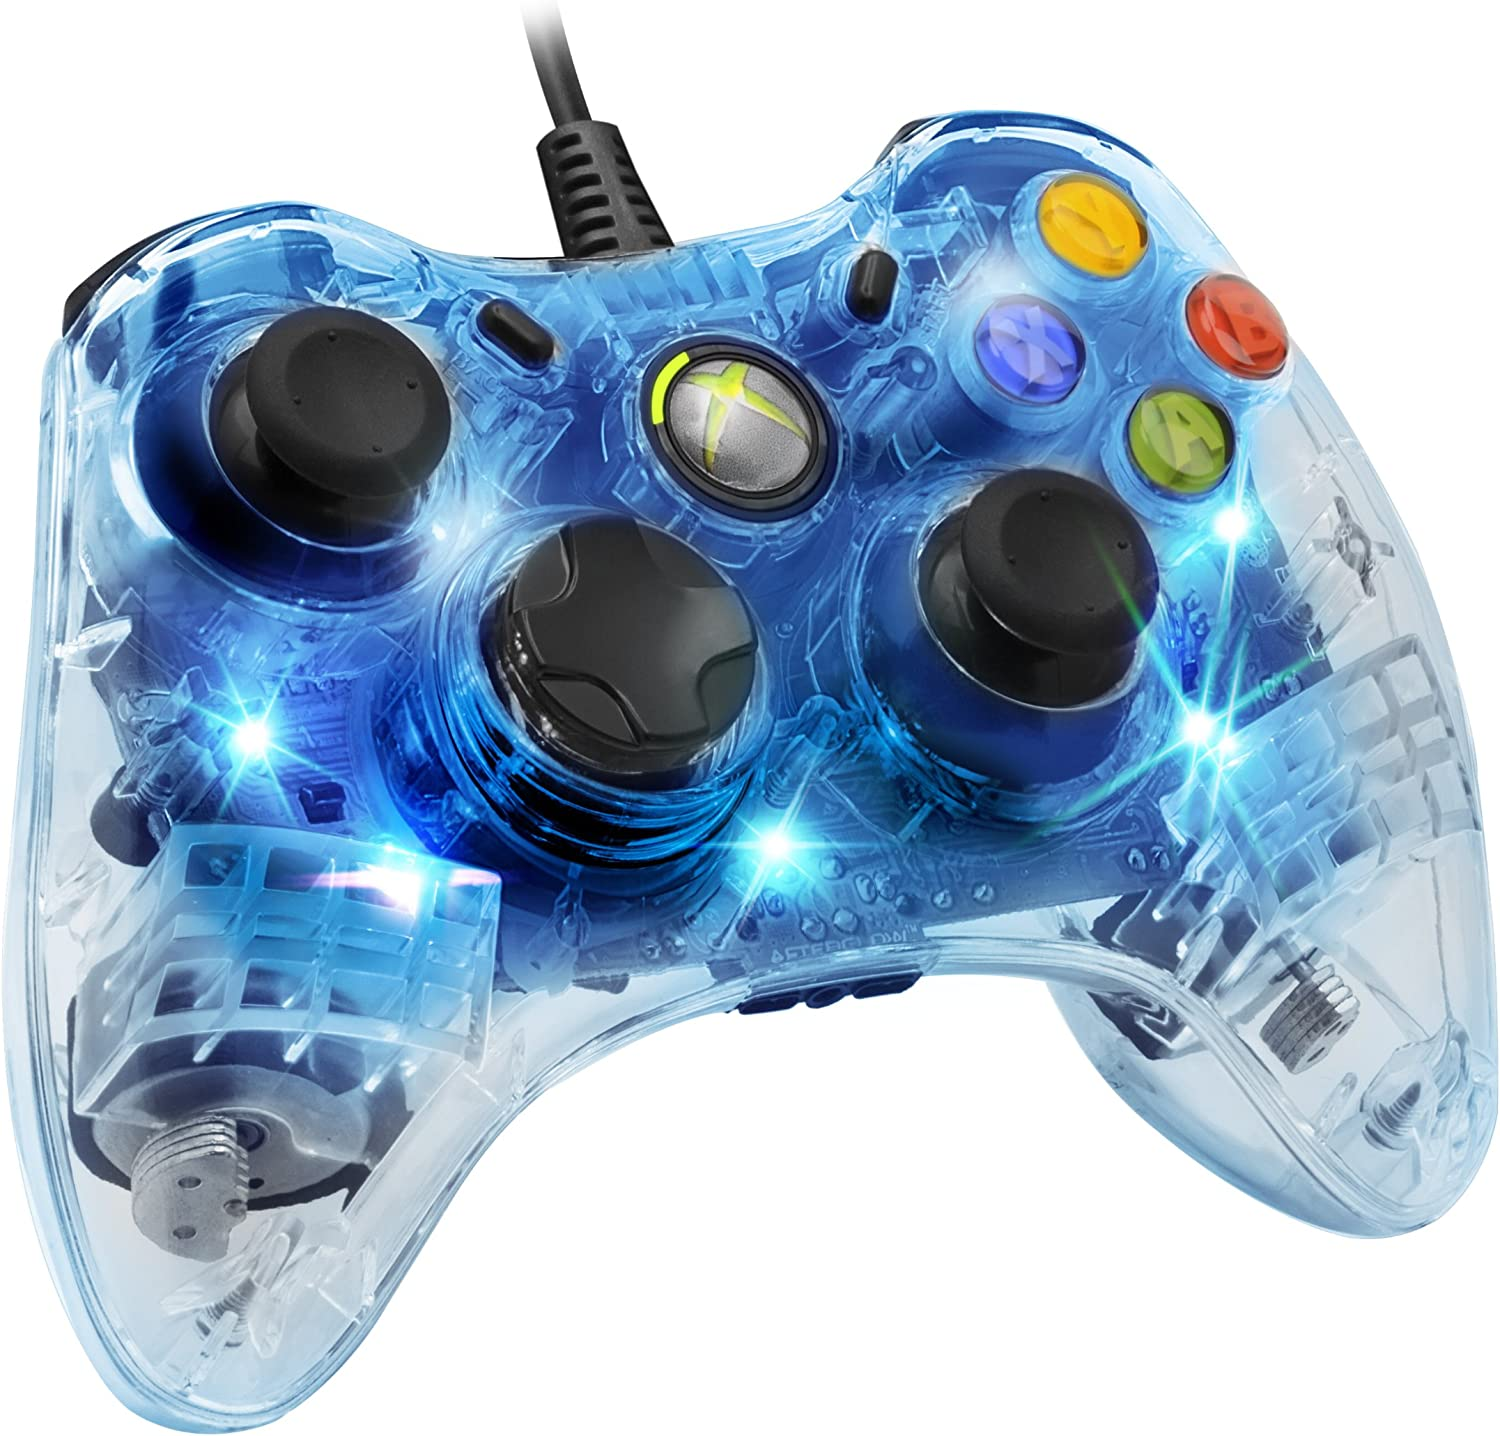 Amazon.com: Afterglow Wired Controller for Xbox 360 - Blue: Video Games